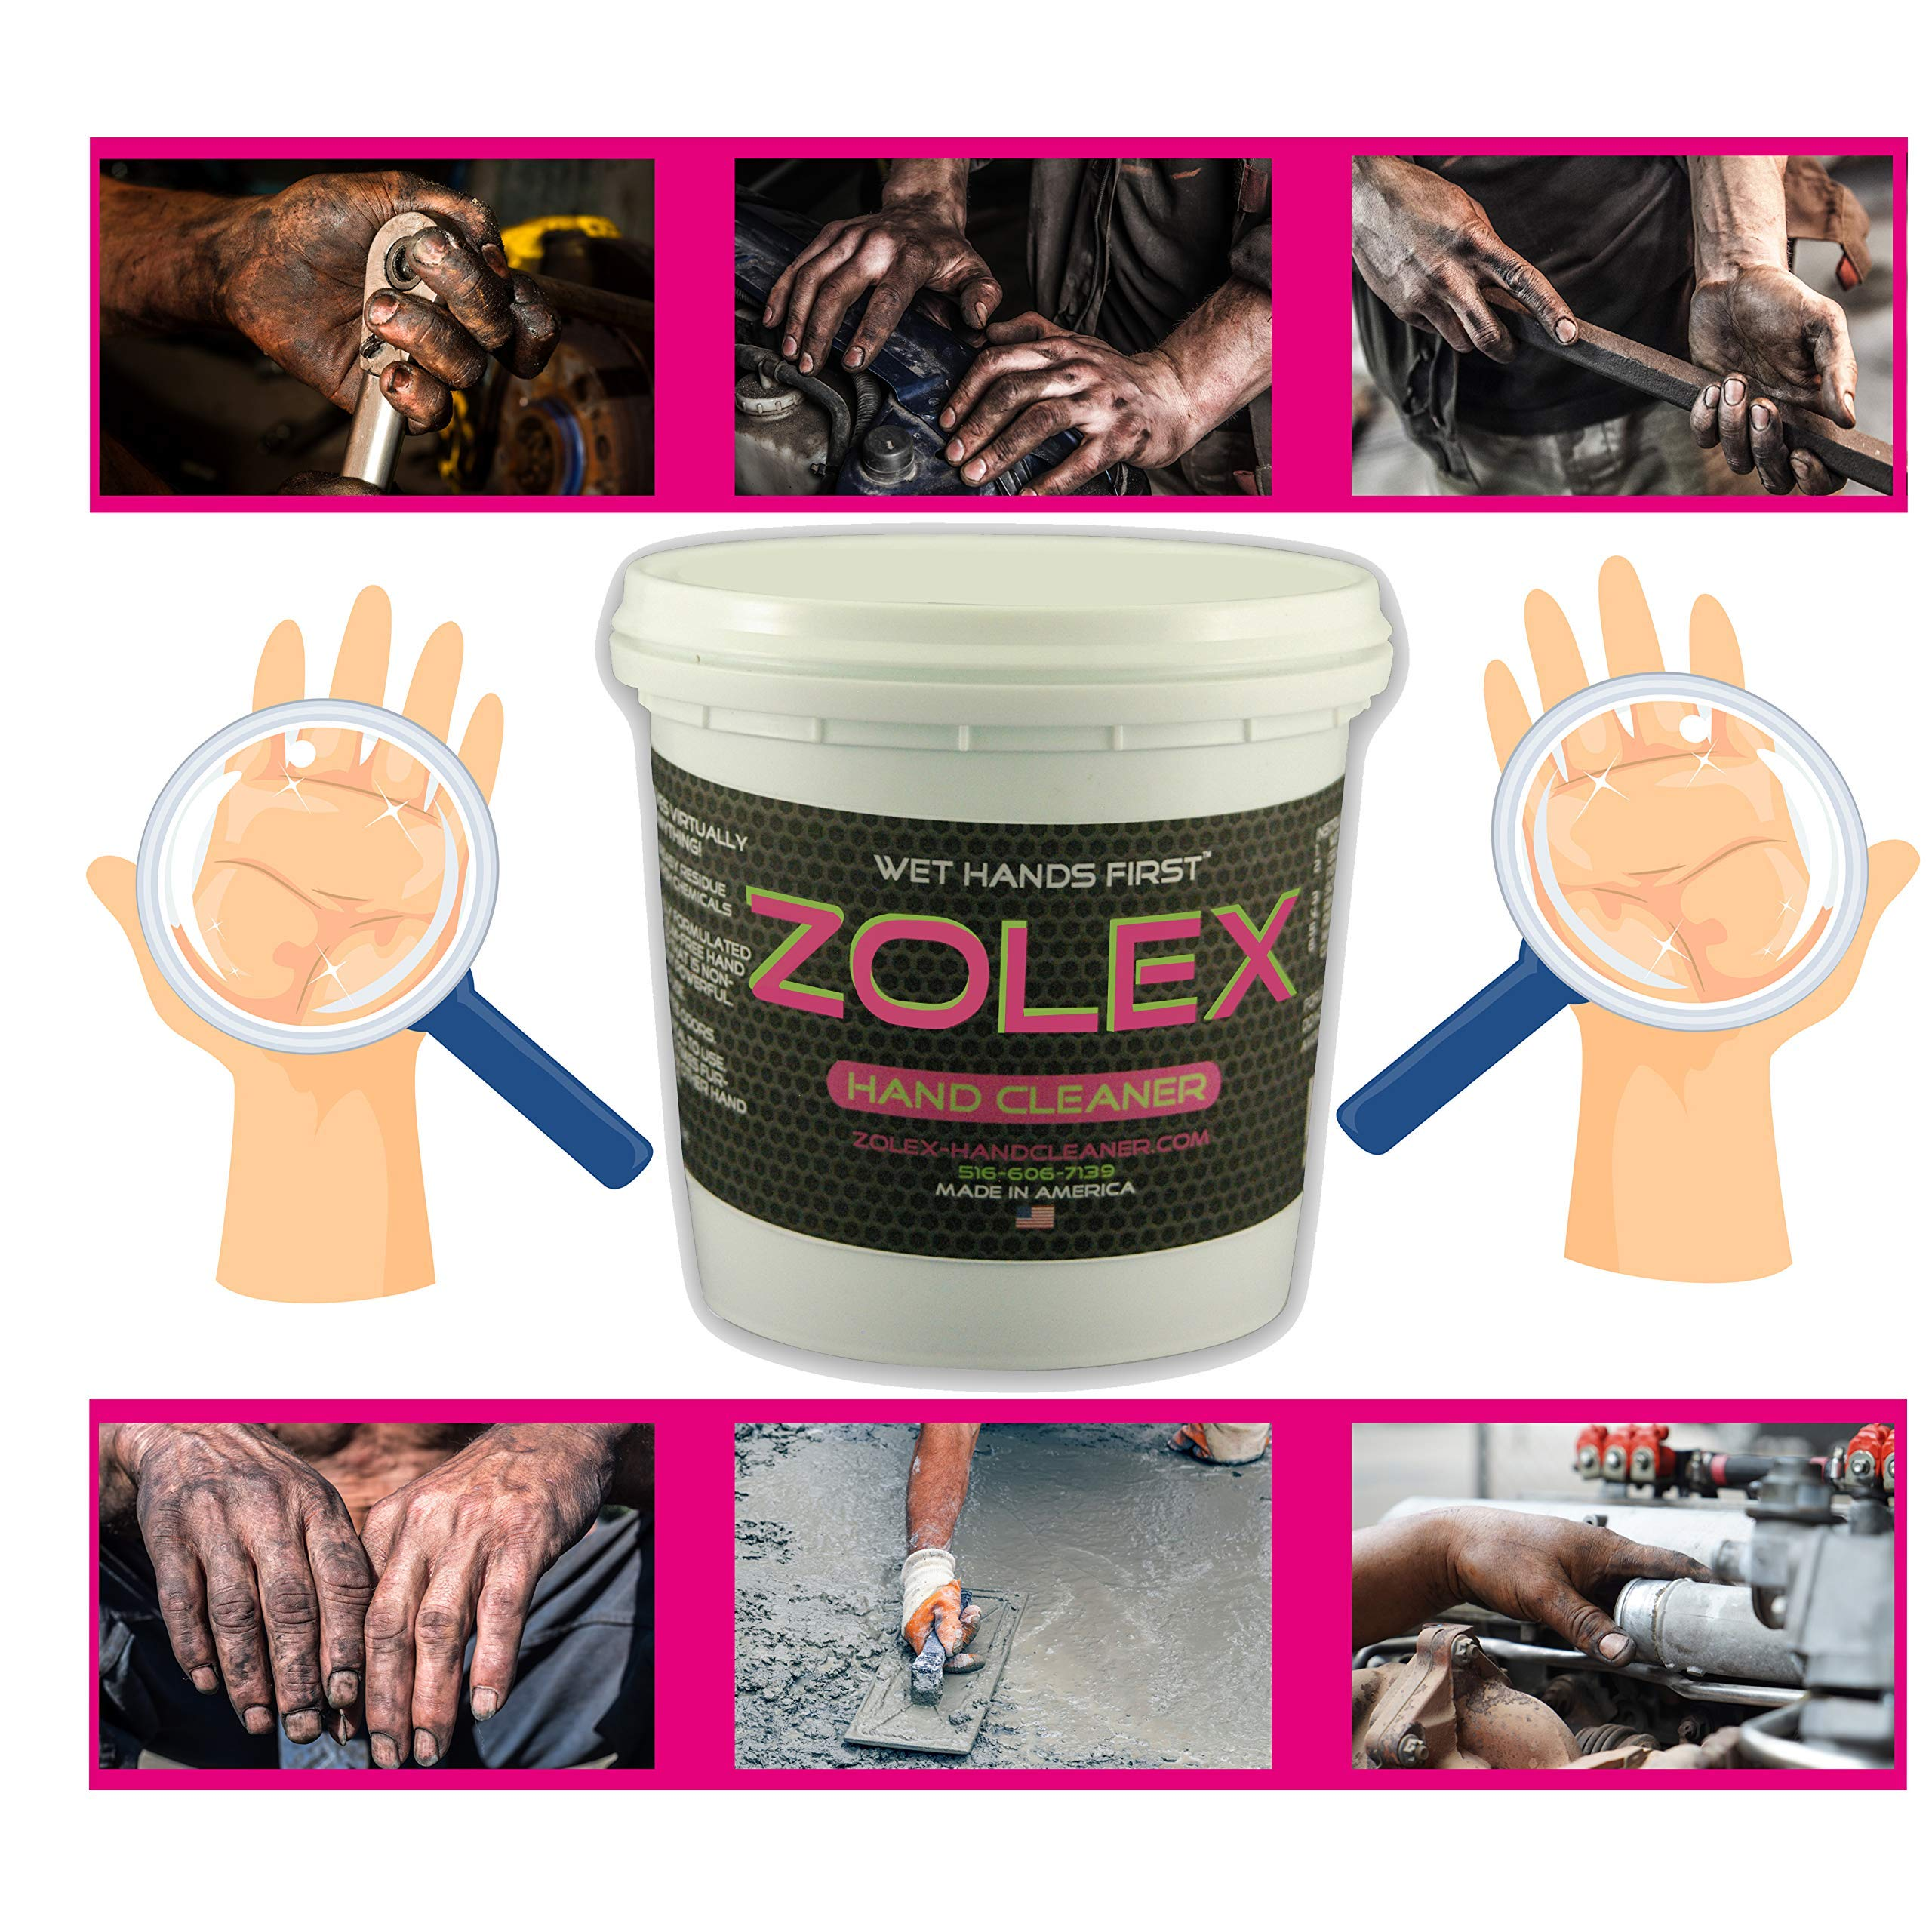 Zolex Water Activated Hand Cleaner for Working Hands| Stain Remover for Heavy Duty Workers | Grease Remover for Mechanics and Heavy Duty Workers - Non-Toxic Petroleum Free | Shop-Sized 3 lb. Tub | by Zolex (Image #4)